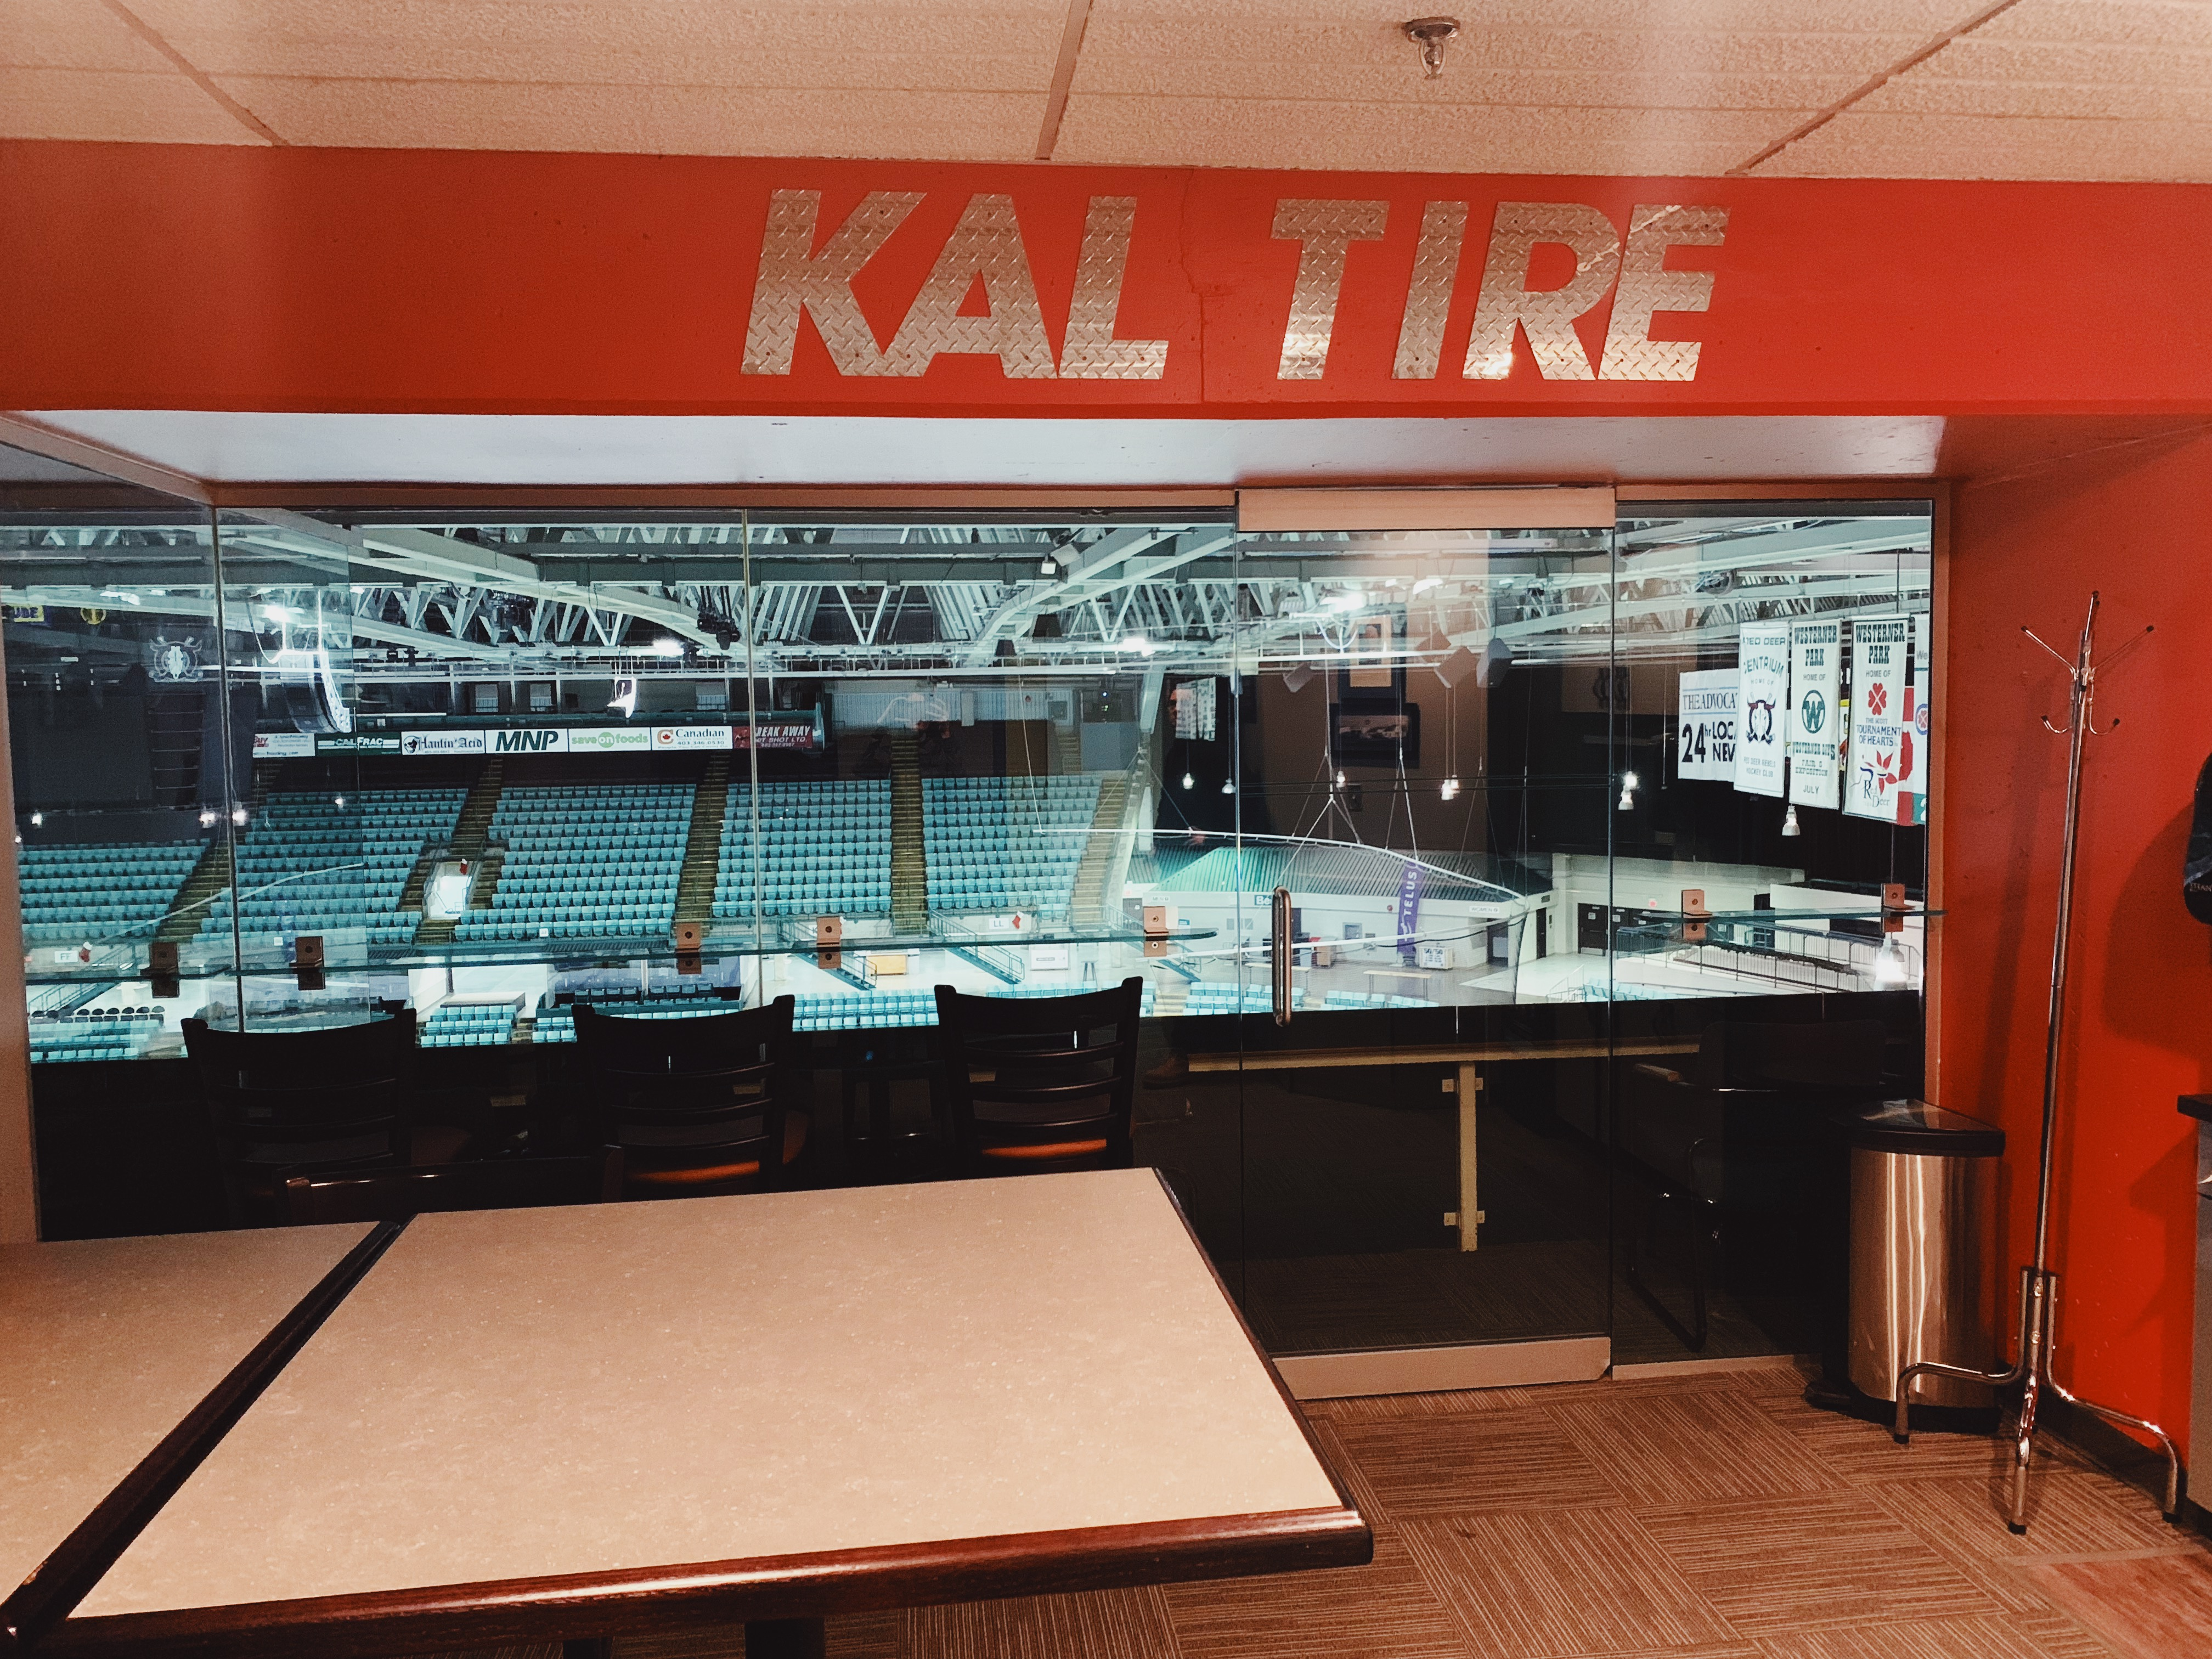 Kal Tire Community Suite